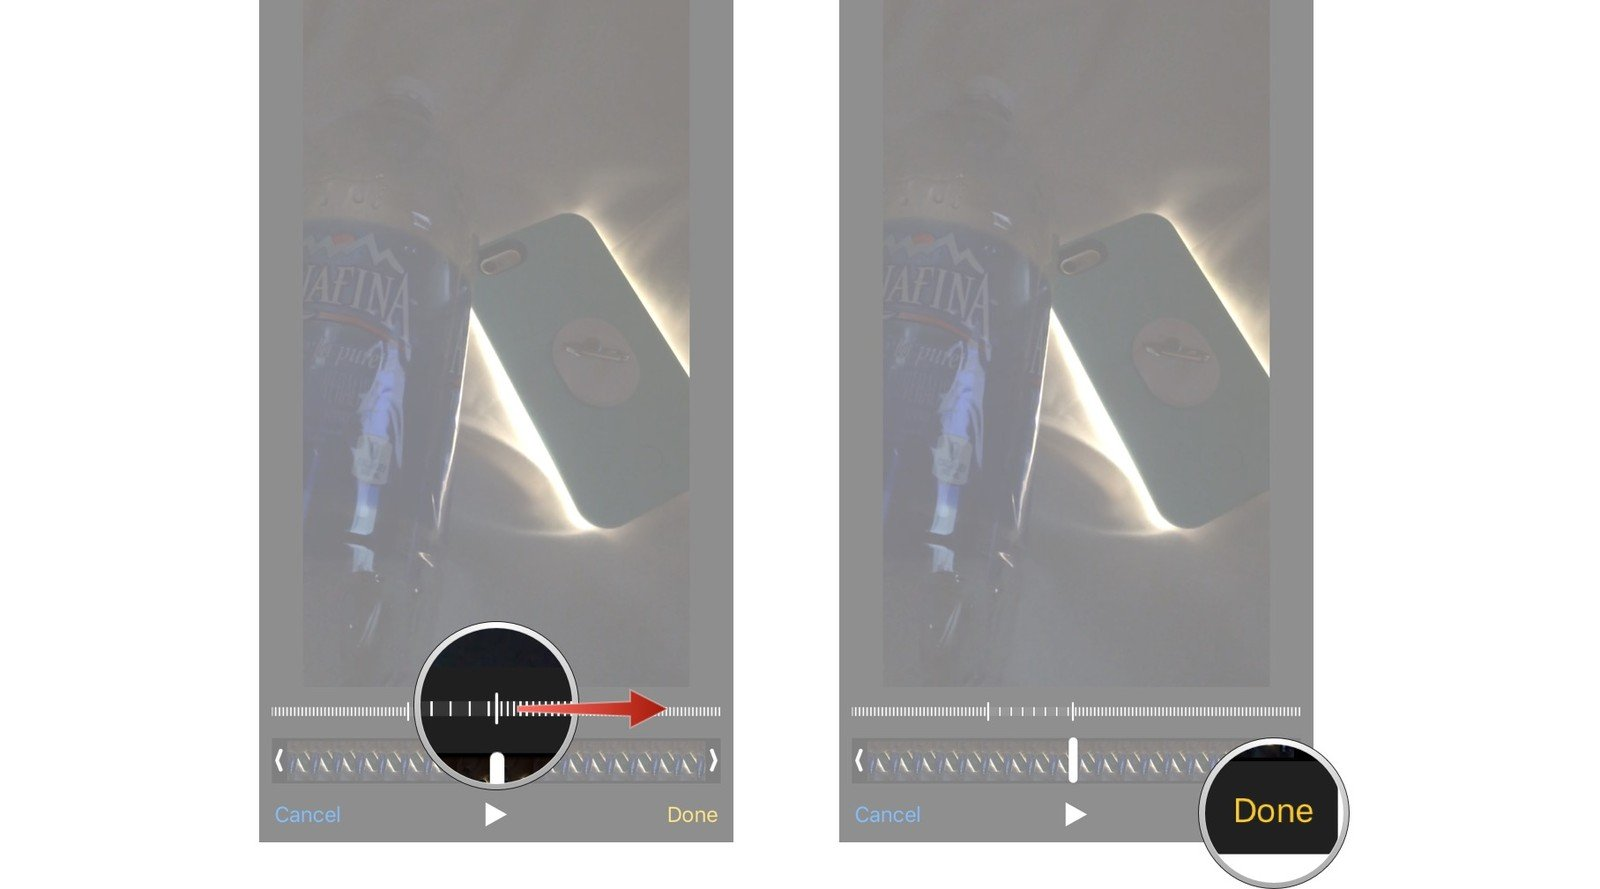 Drag the sliders on either side to the points where you want the video to ease into our out of slo-mo, then tap done when you have the sliders where you want them.